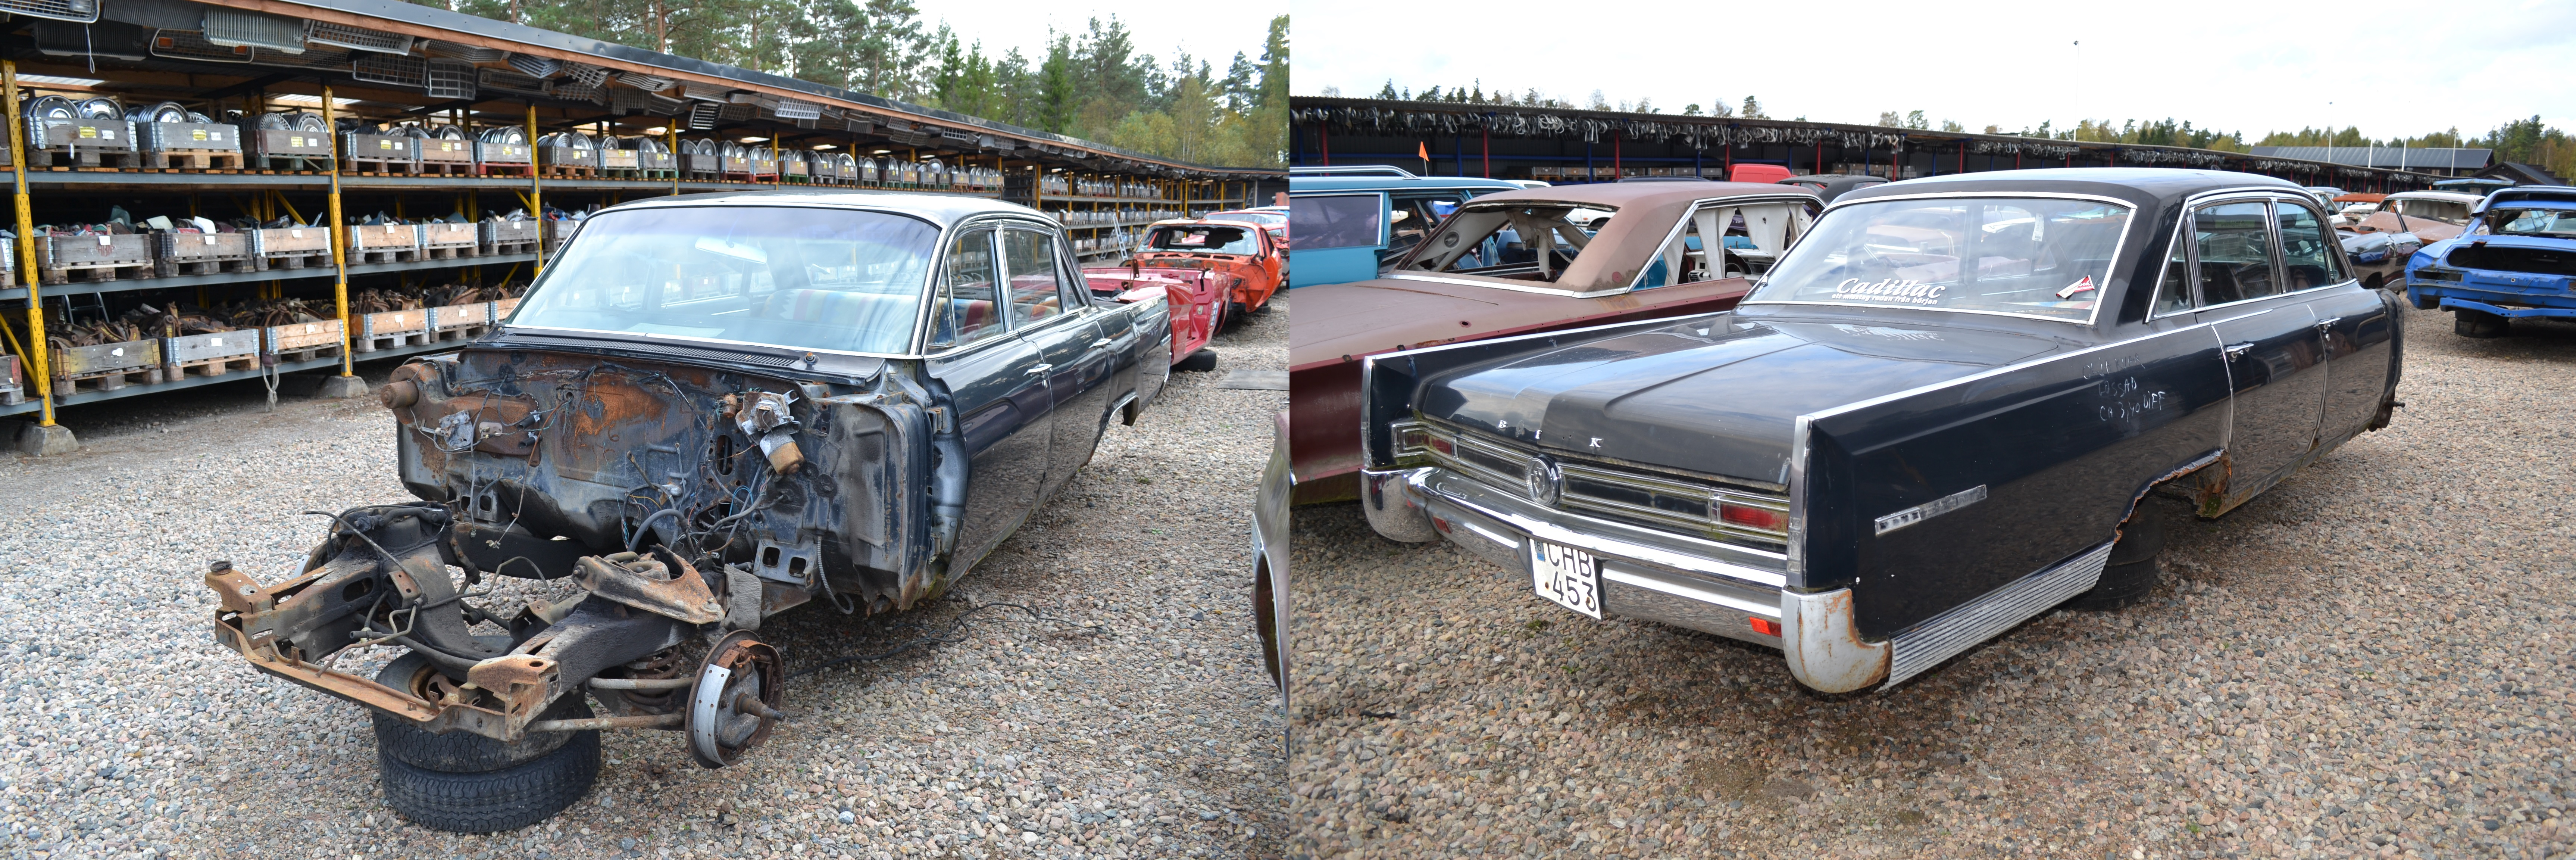 buick electra -63